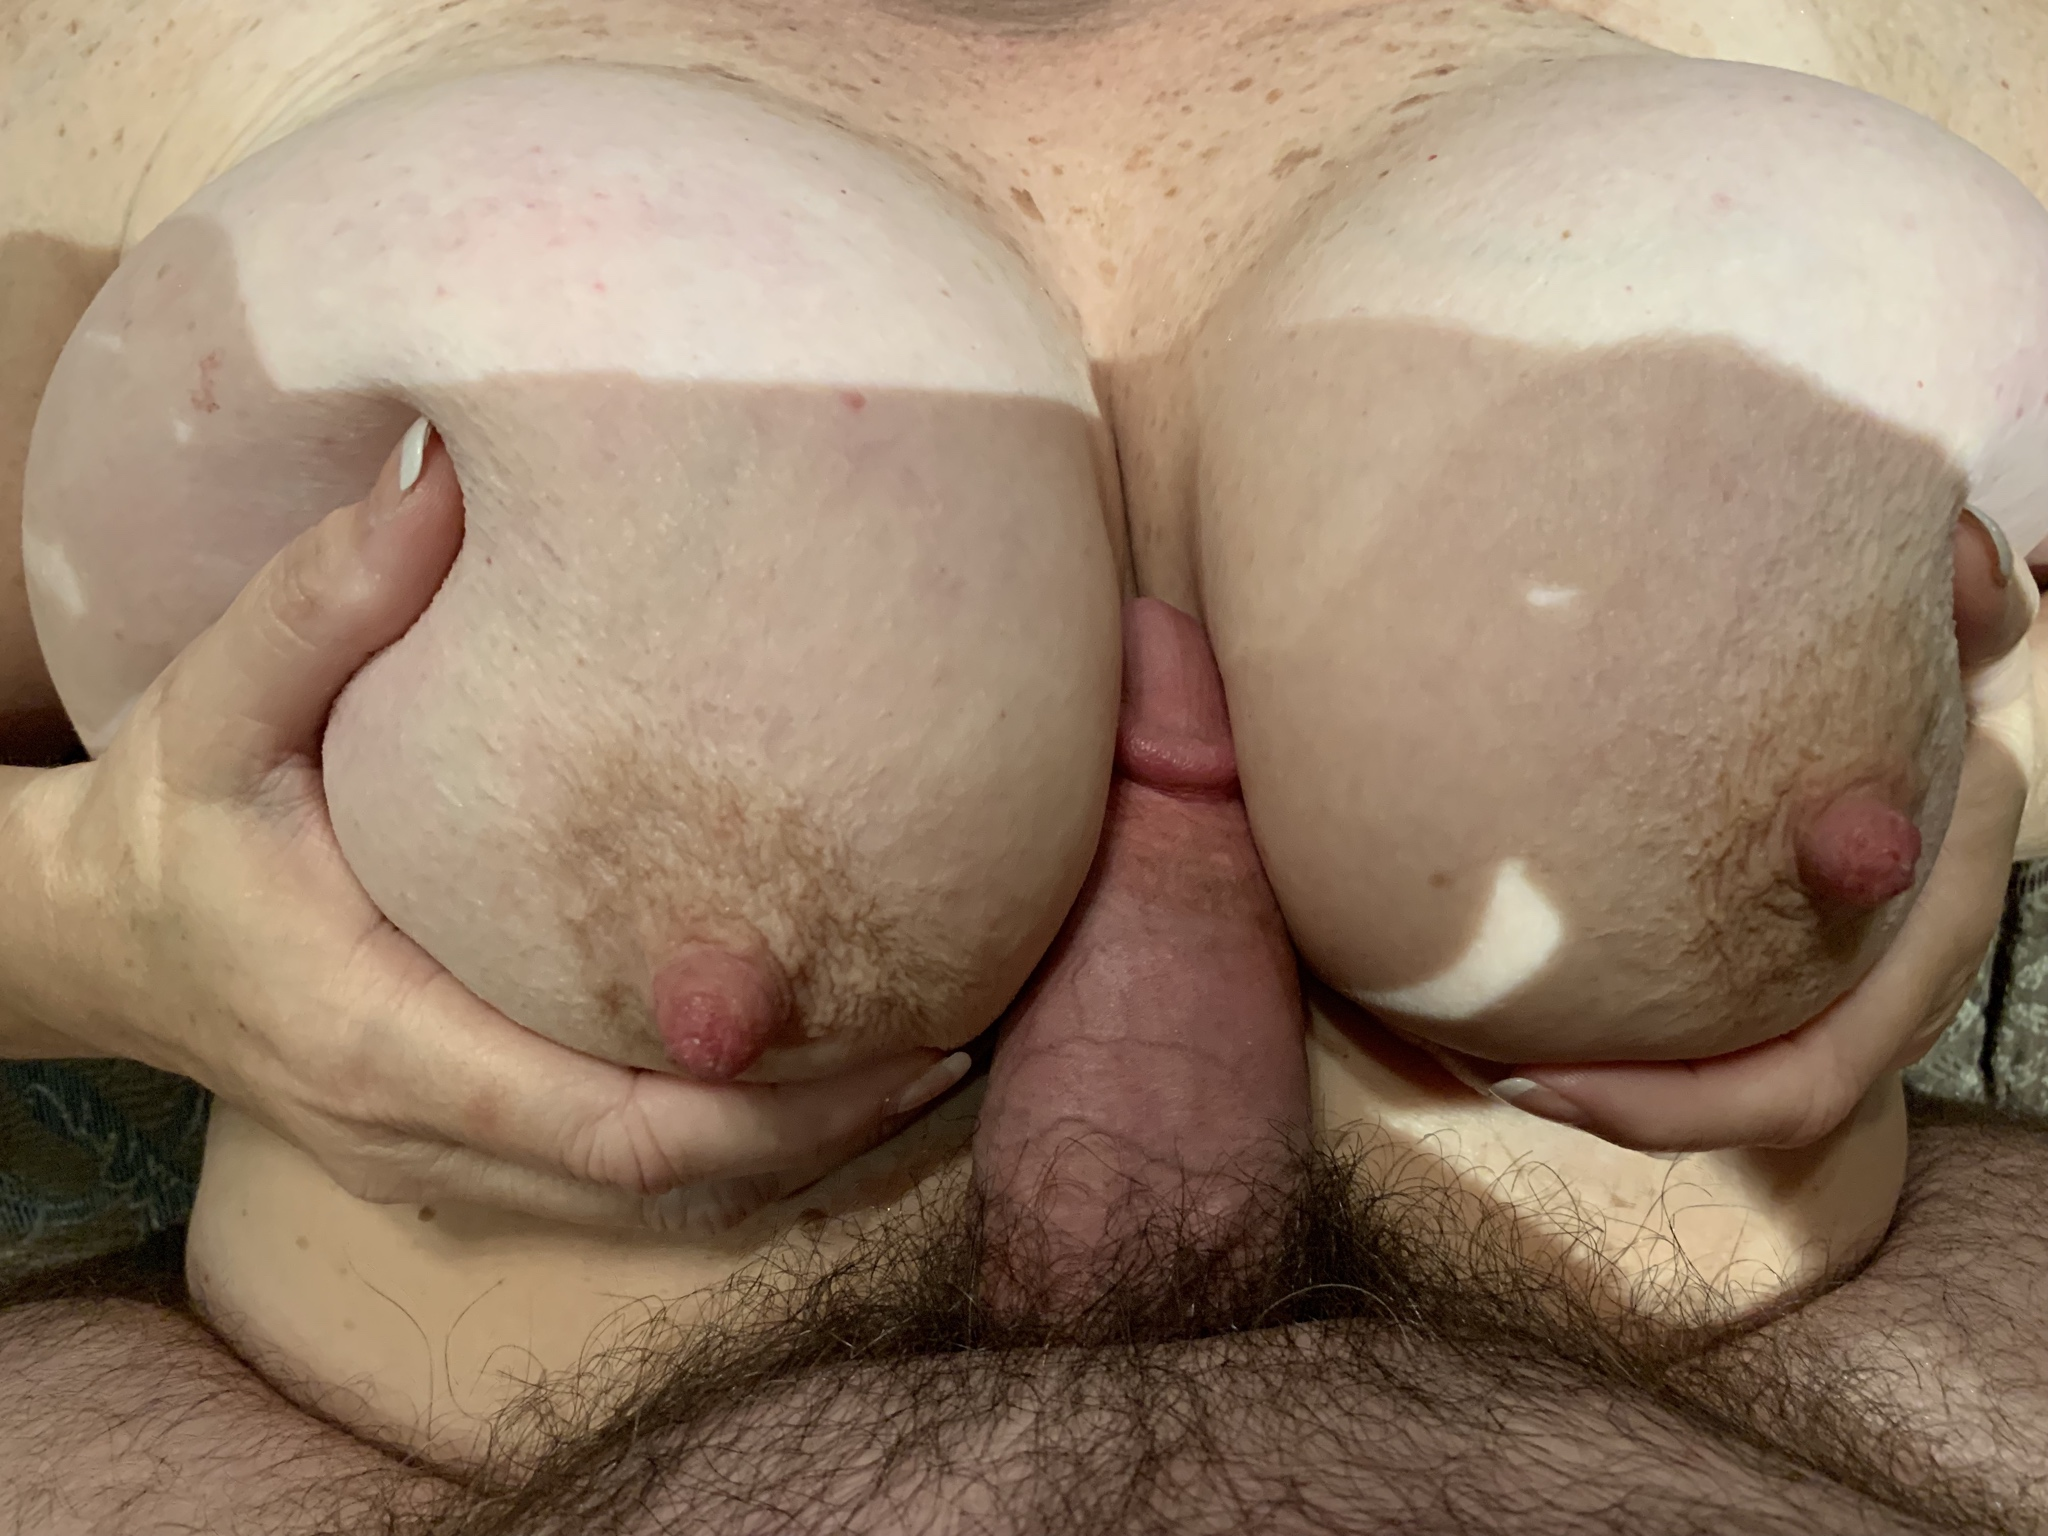 Small Tits Bounce While Fuck